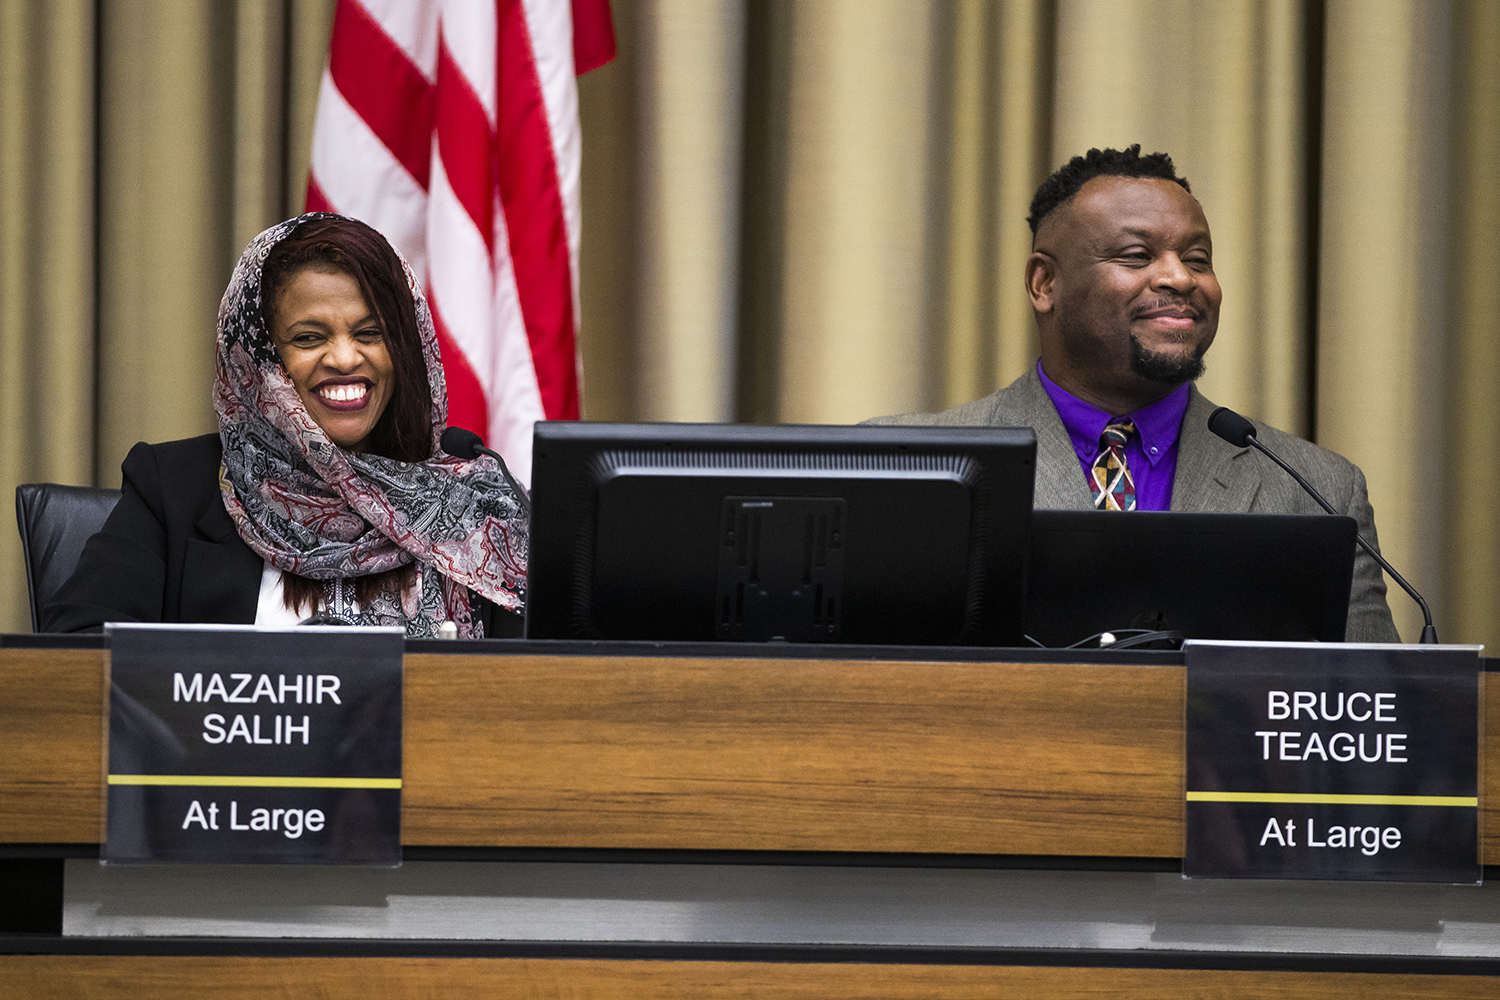 Mayor Pro Tem Mazahir Salih (left) and Mayor Bruce Teague smile after being sworn in during the City Council meeting at Iowa City City Hall on Thursday, Jan. 2, 2020. The city councilors also voted on appointments for a number of city commissions.